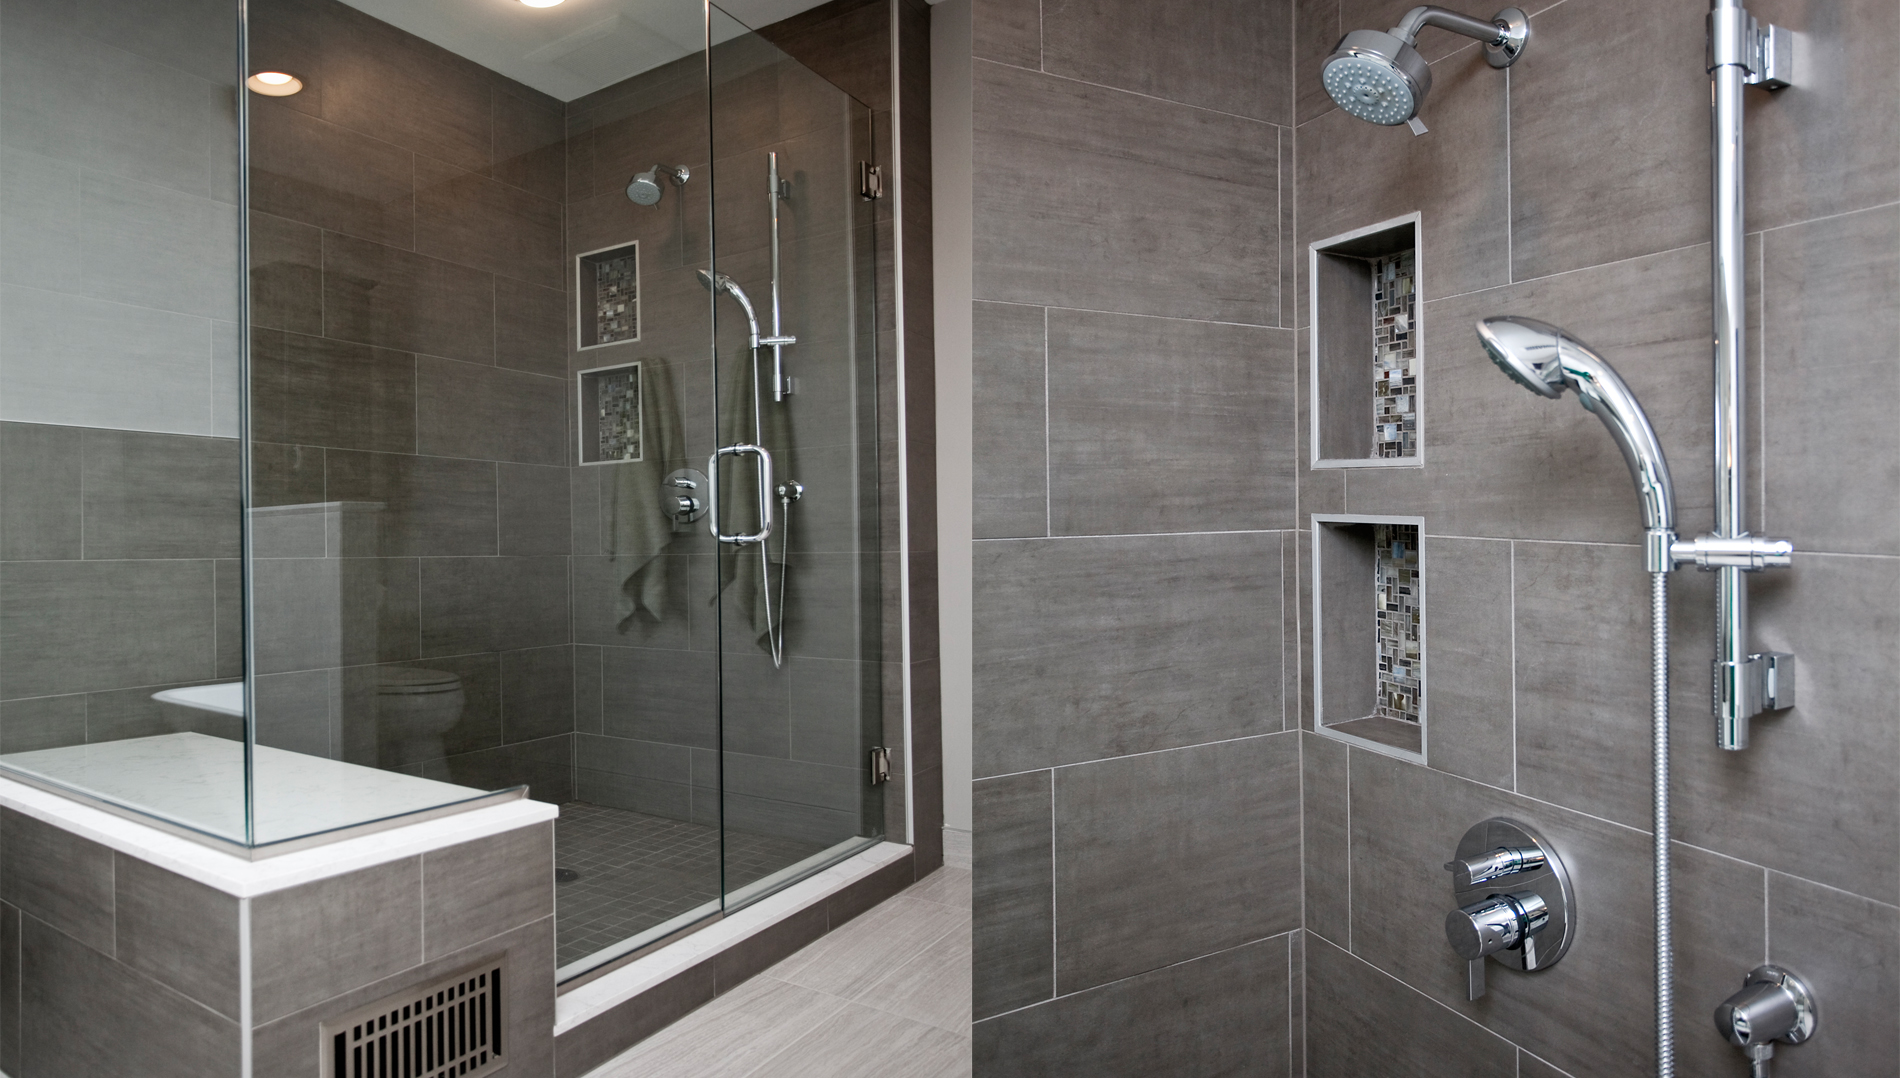 Spacious serene bathroom remodeling Bathroom tile showers